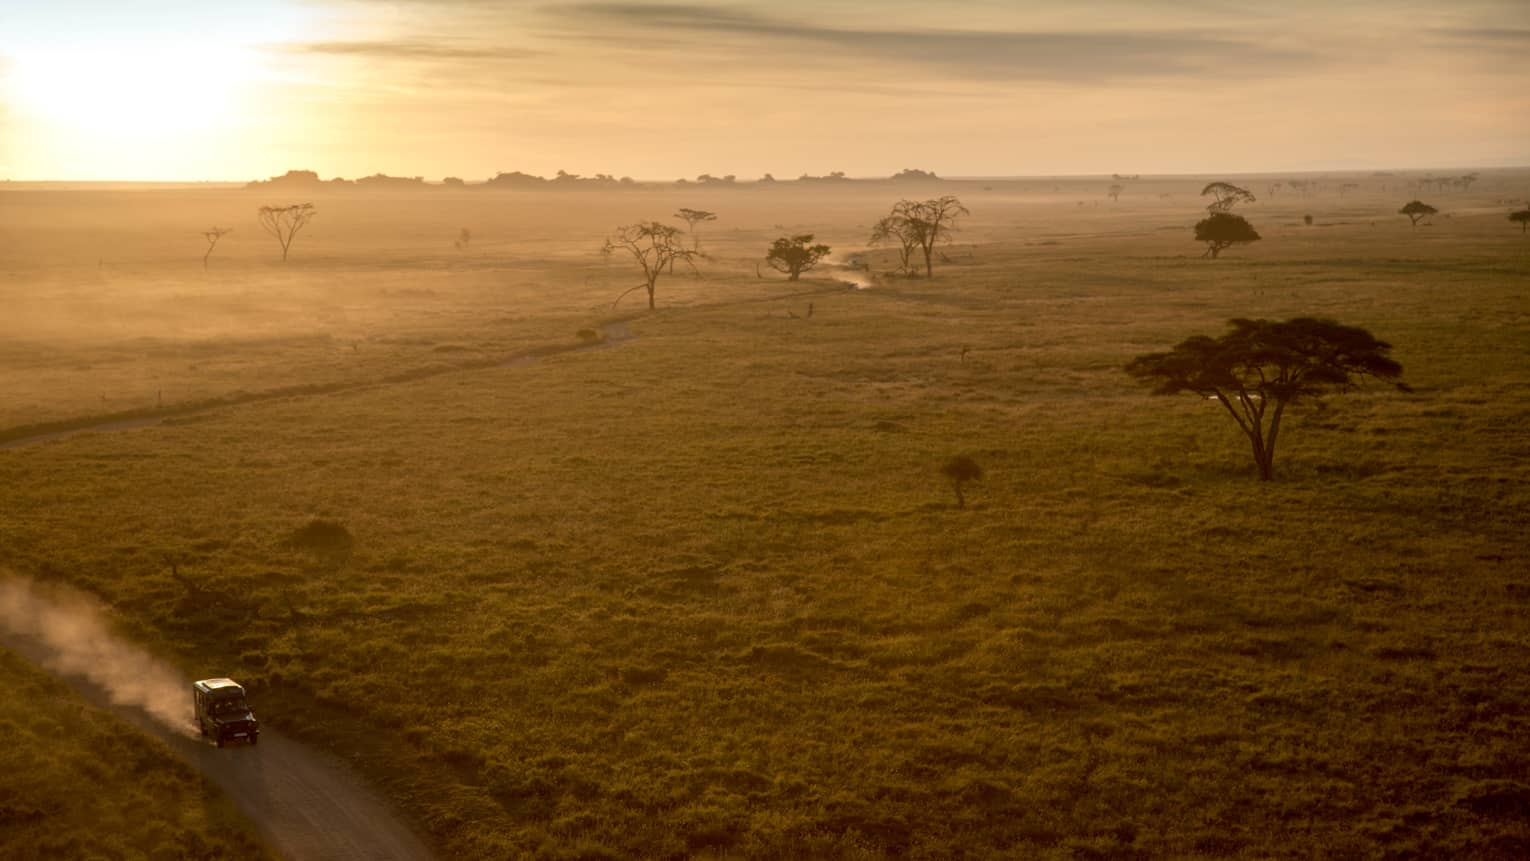 Sunset over Serengeti plains, trees